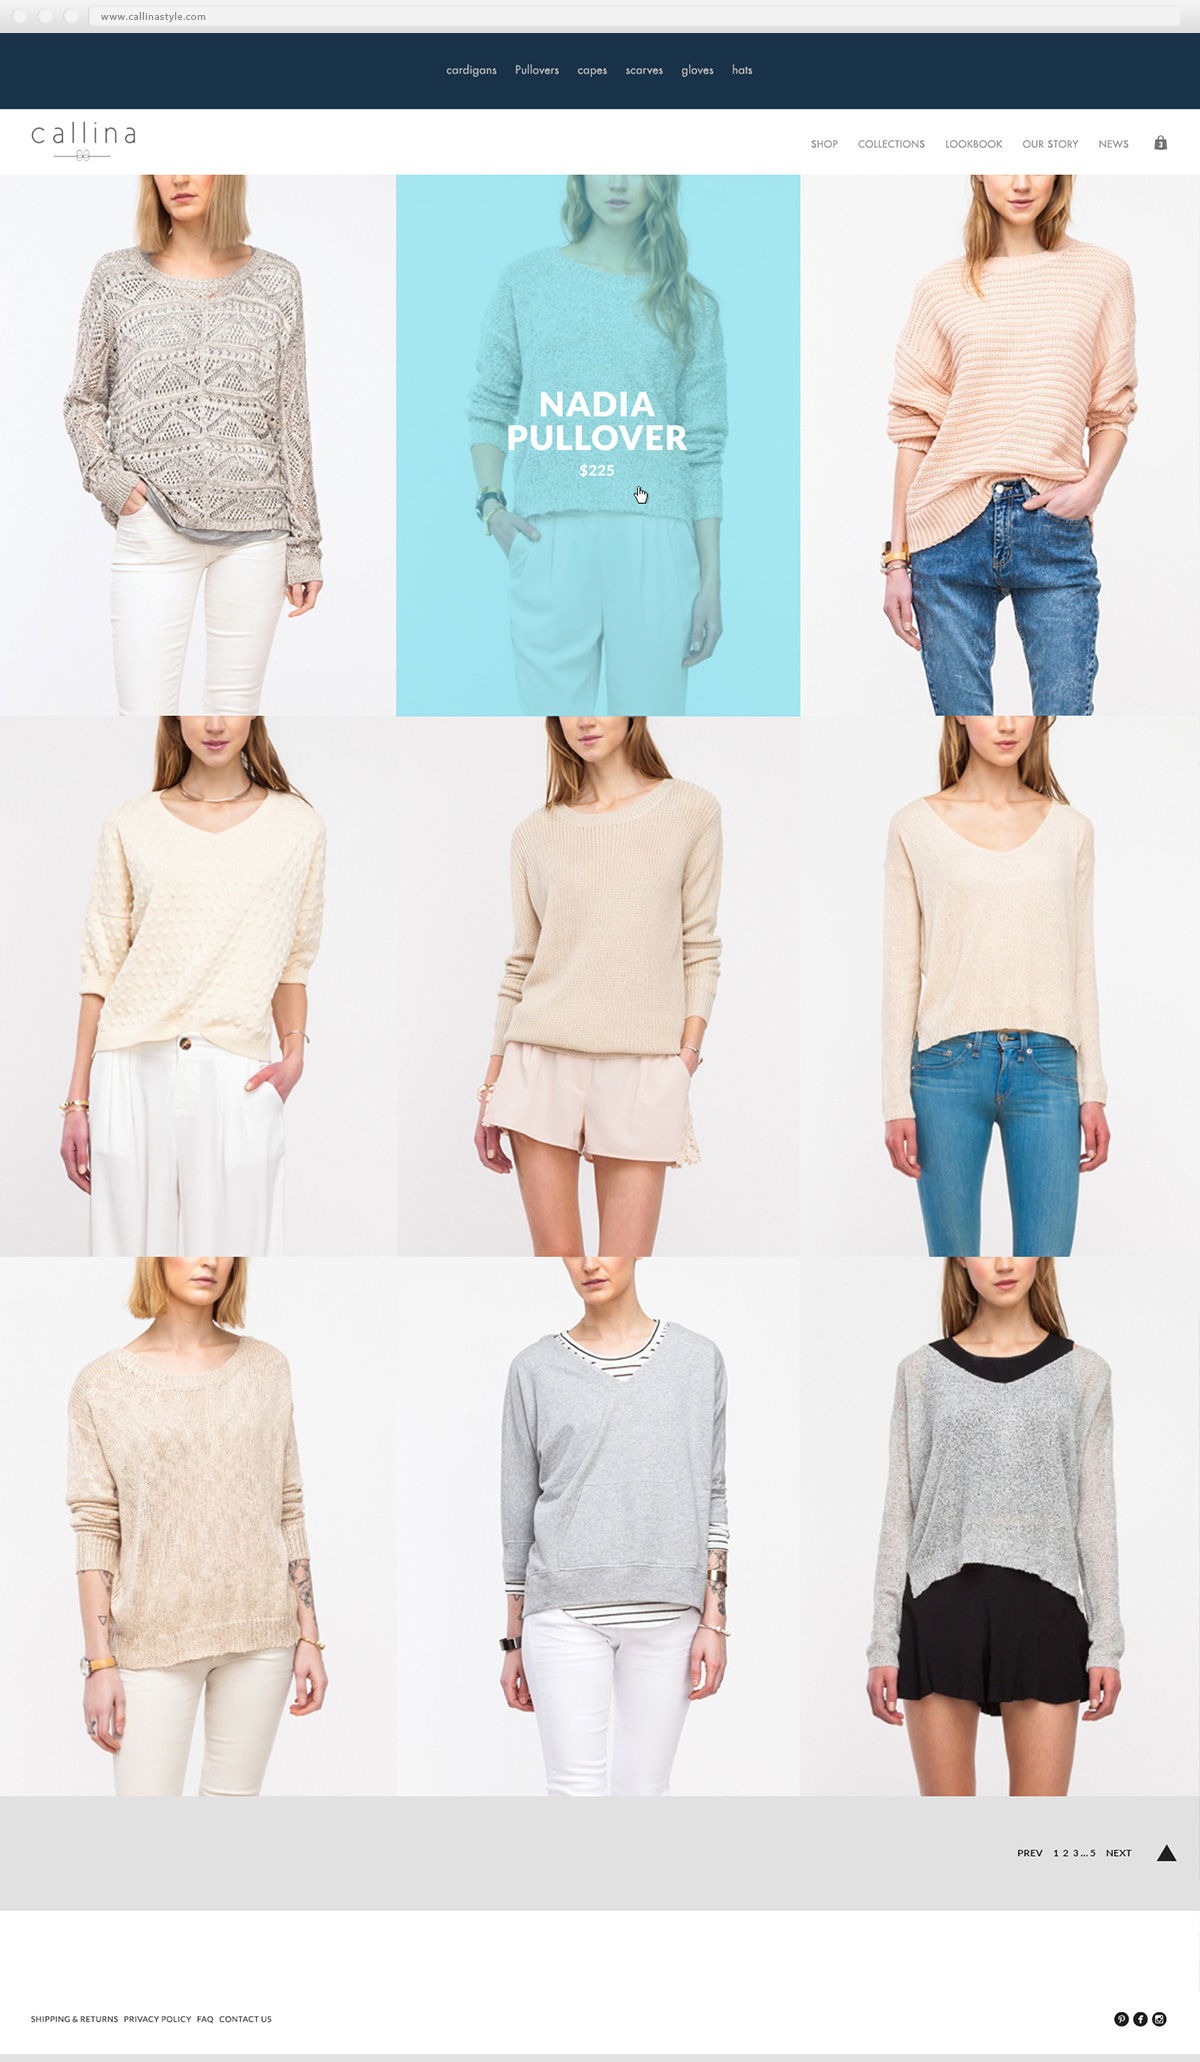 Callina Collection Page